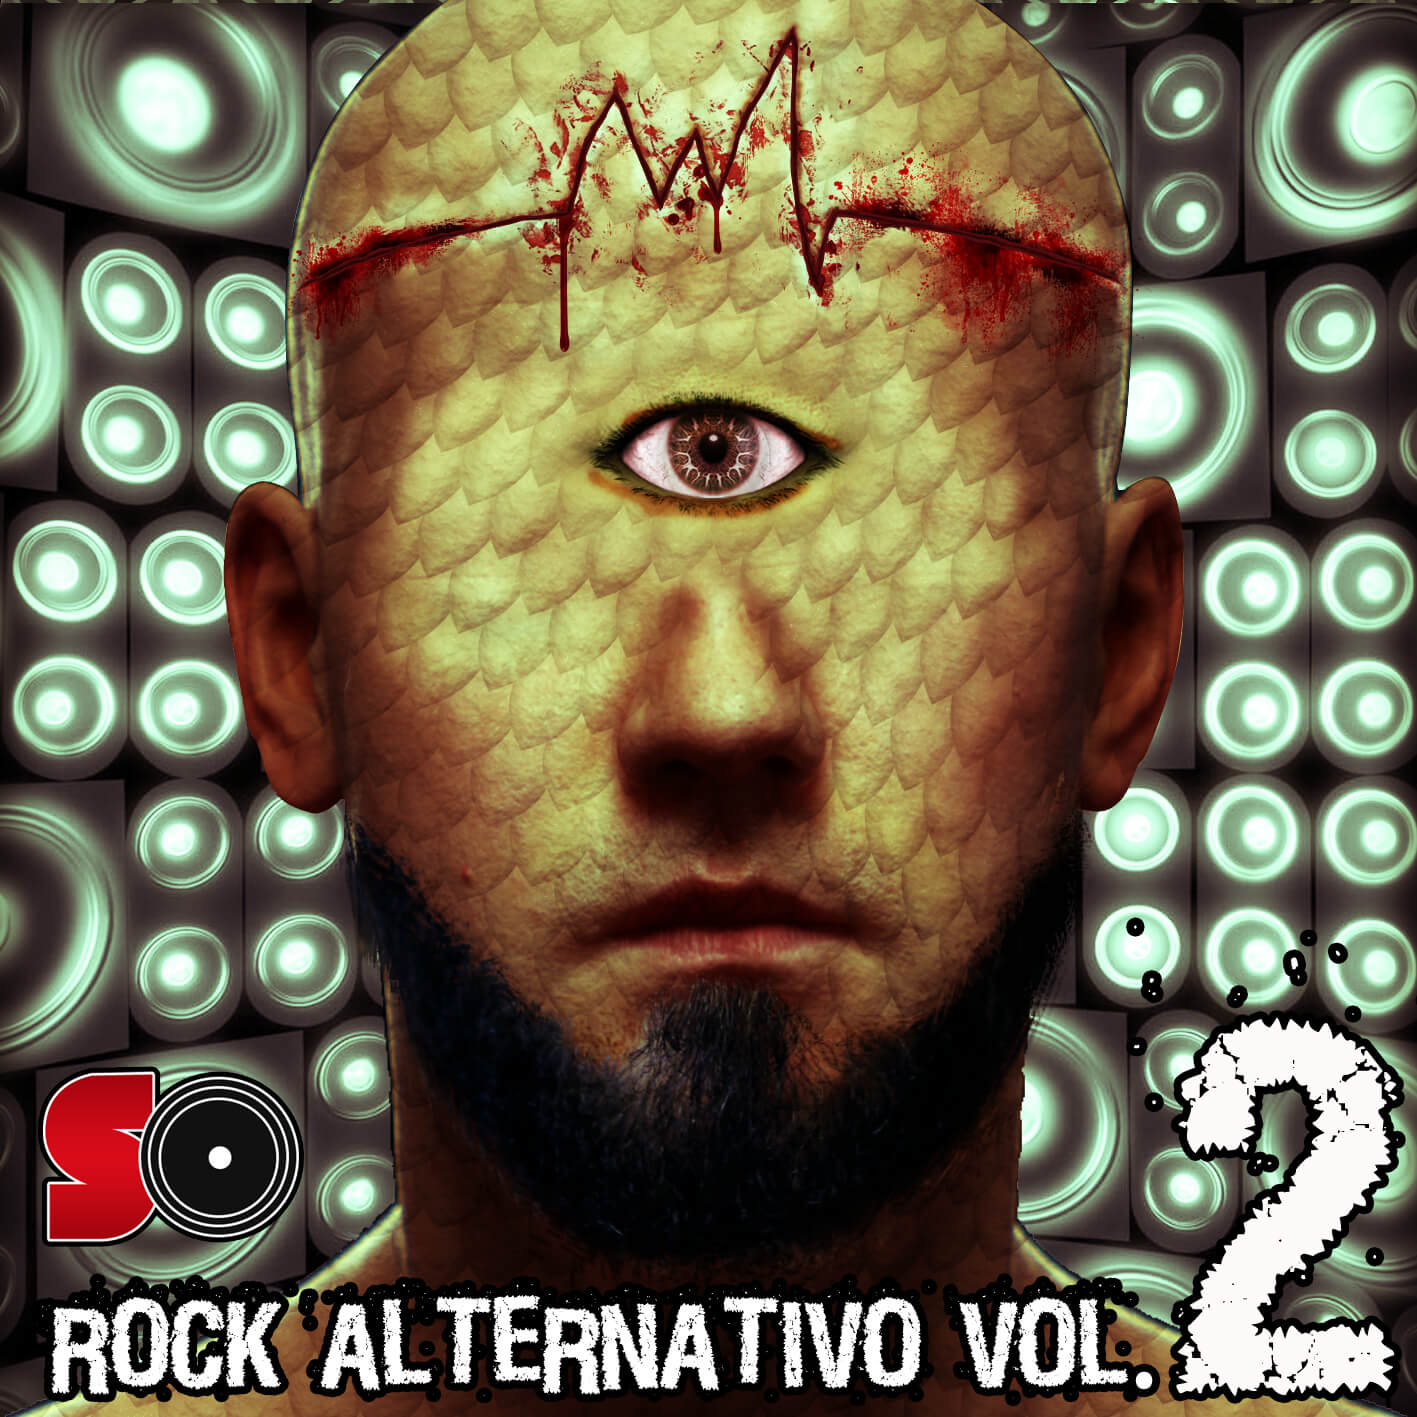 Rock Alternativo Sonidos Ocultos Vol.2